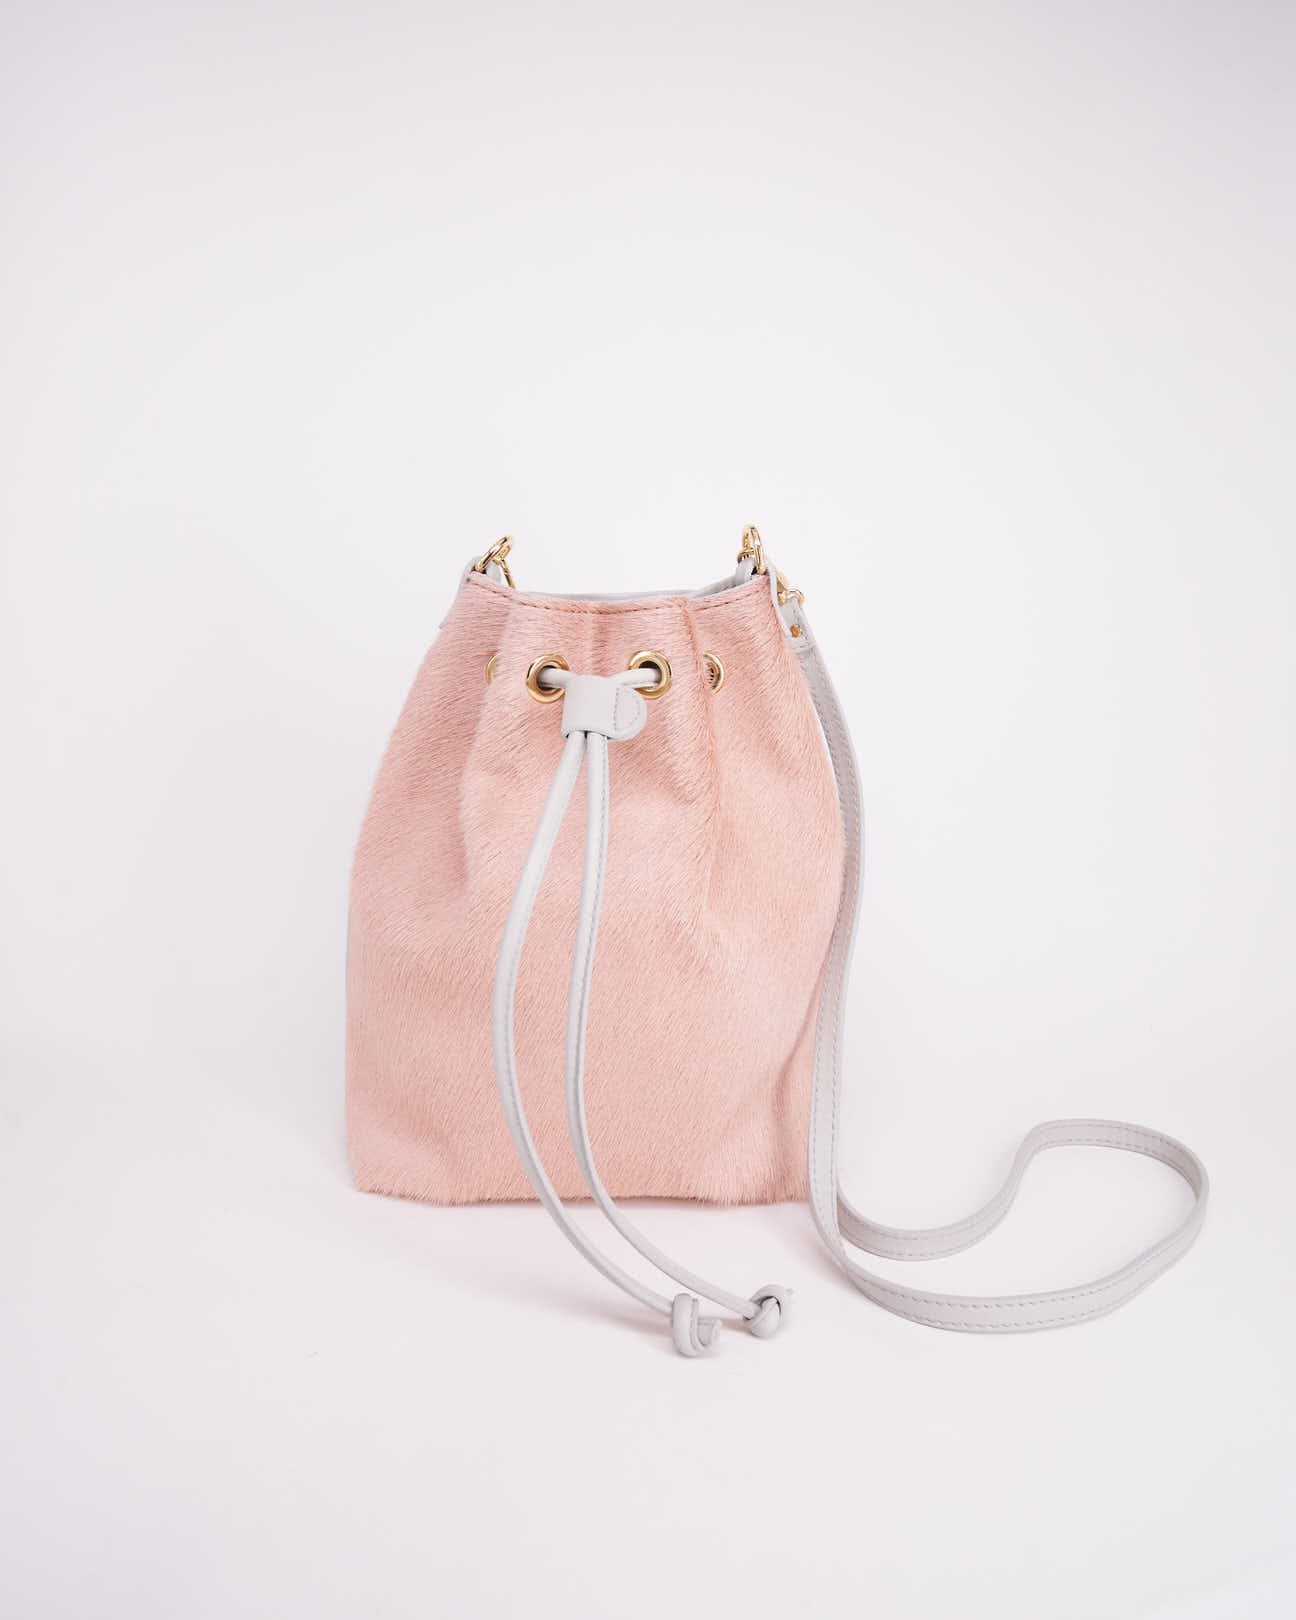 Bag-Nuo Sac-Nuovum-Leather-Pink-localdesigners-Barcelona-Nuovum-Handmade-longstrap